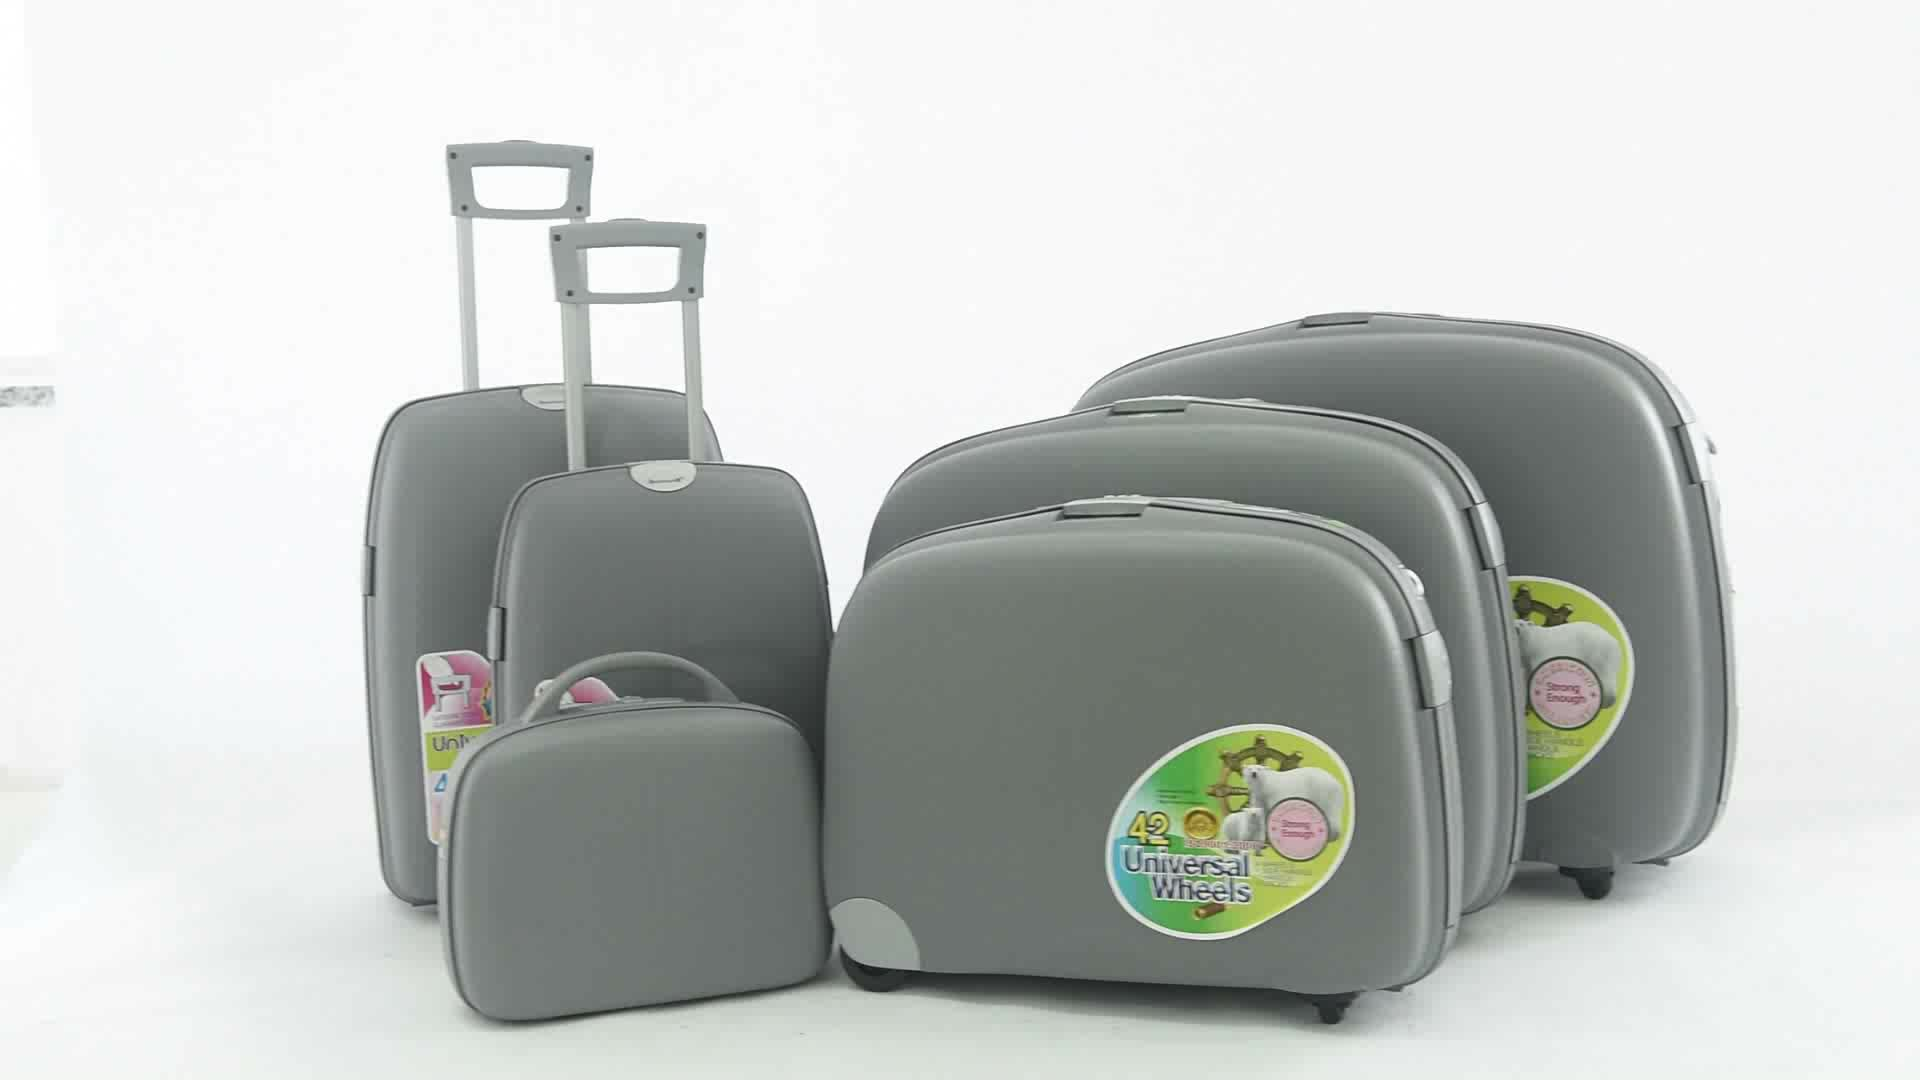 2017 Luggage Bag Set Bubule Suitcase Parts - Buy Luggage Bag Set ...